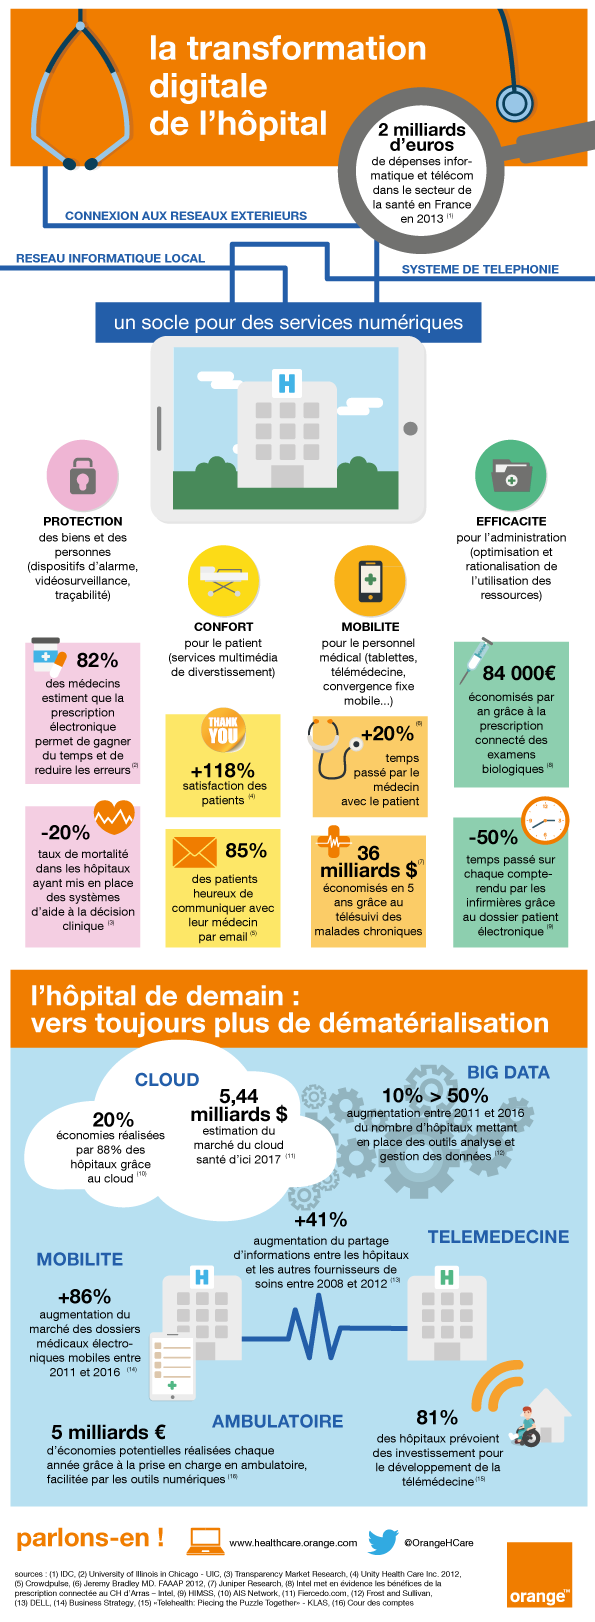 8491597413_40_infographie-la-transformation-digitale-de-lhopital-fr.png